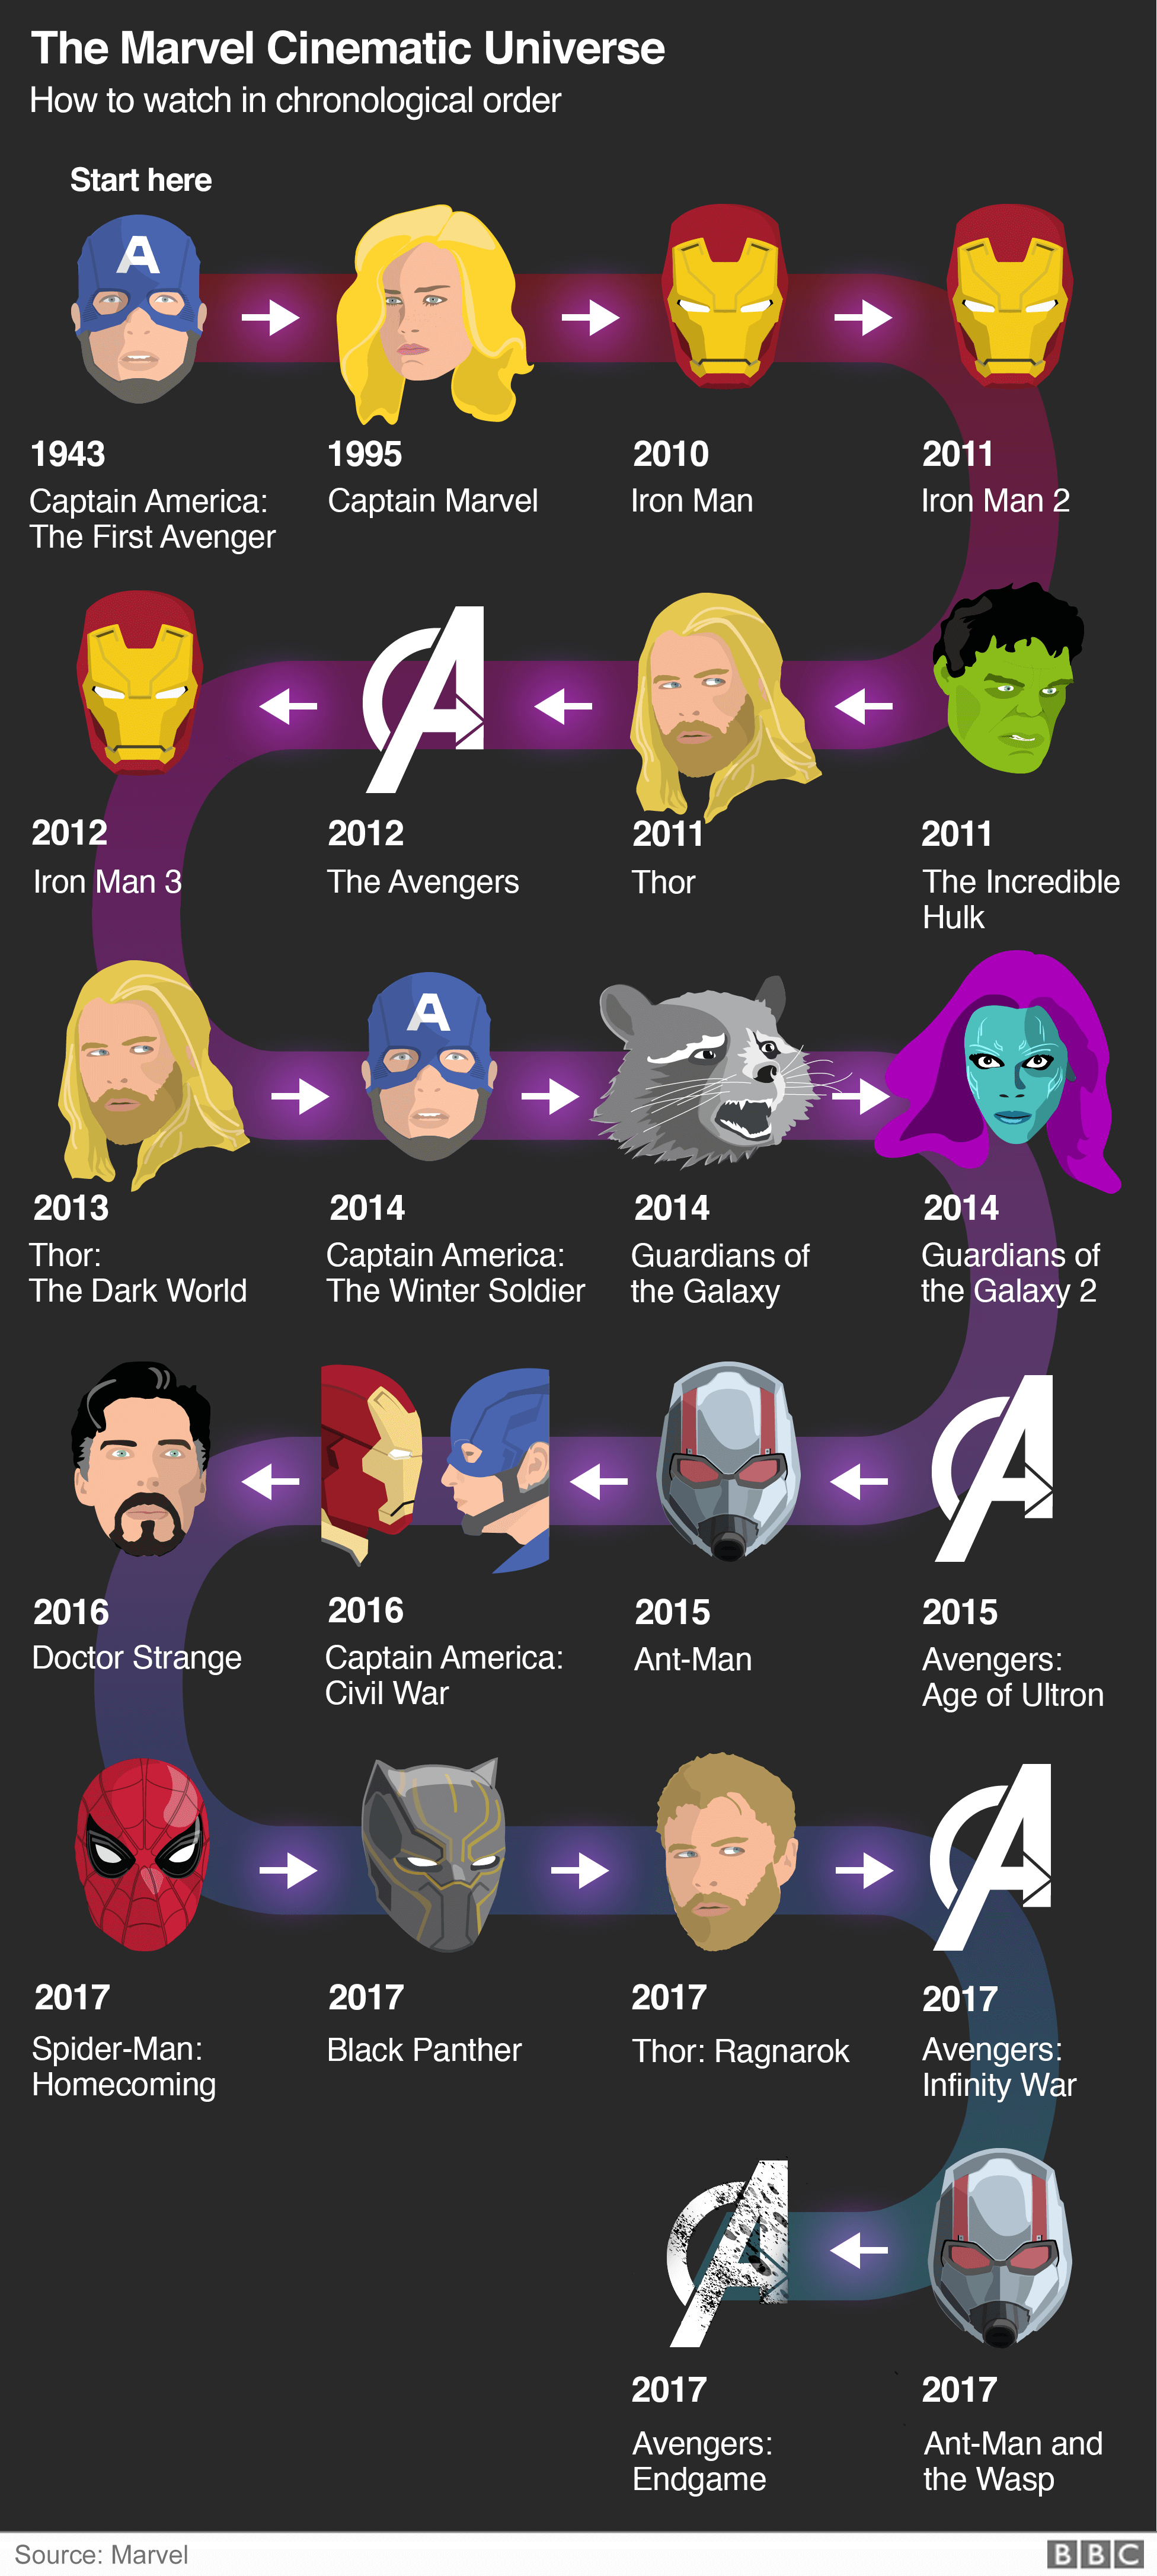 Graphic: How to watch the Marvel films in chronological order